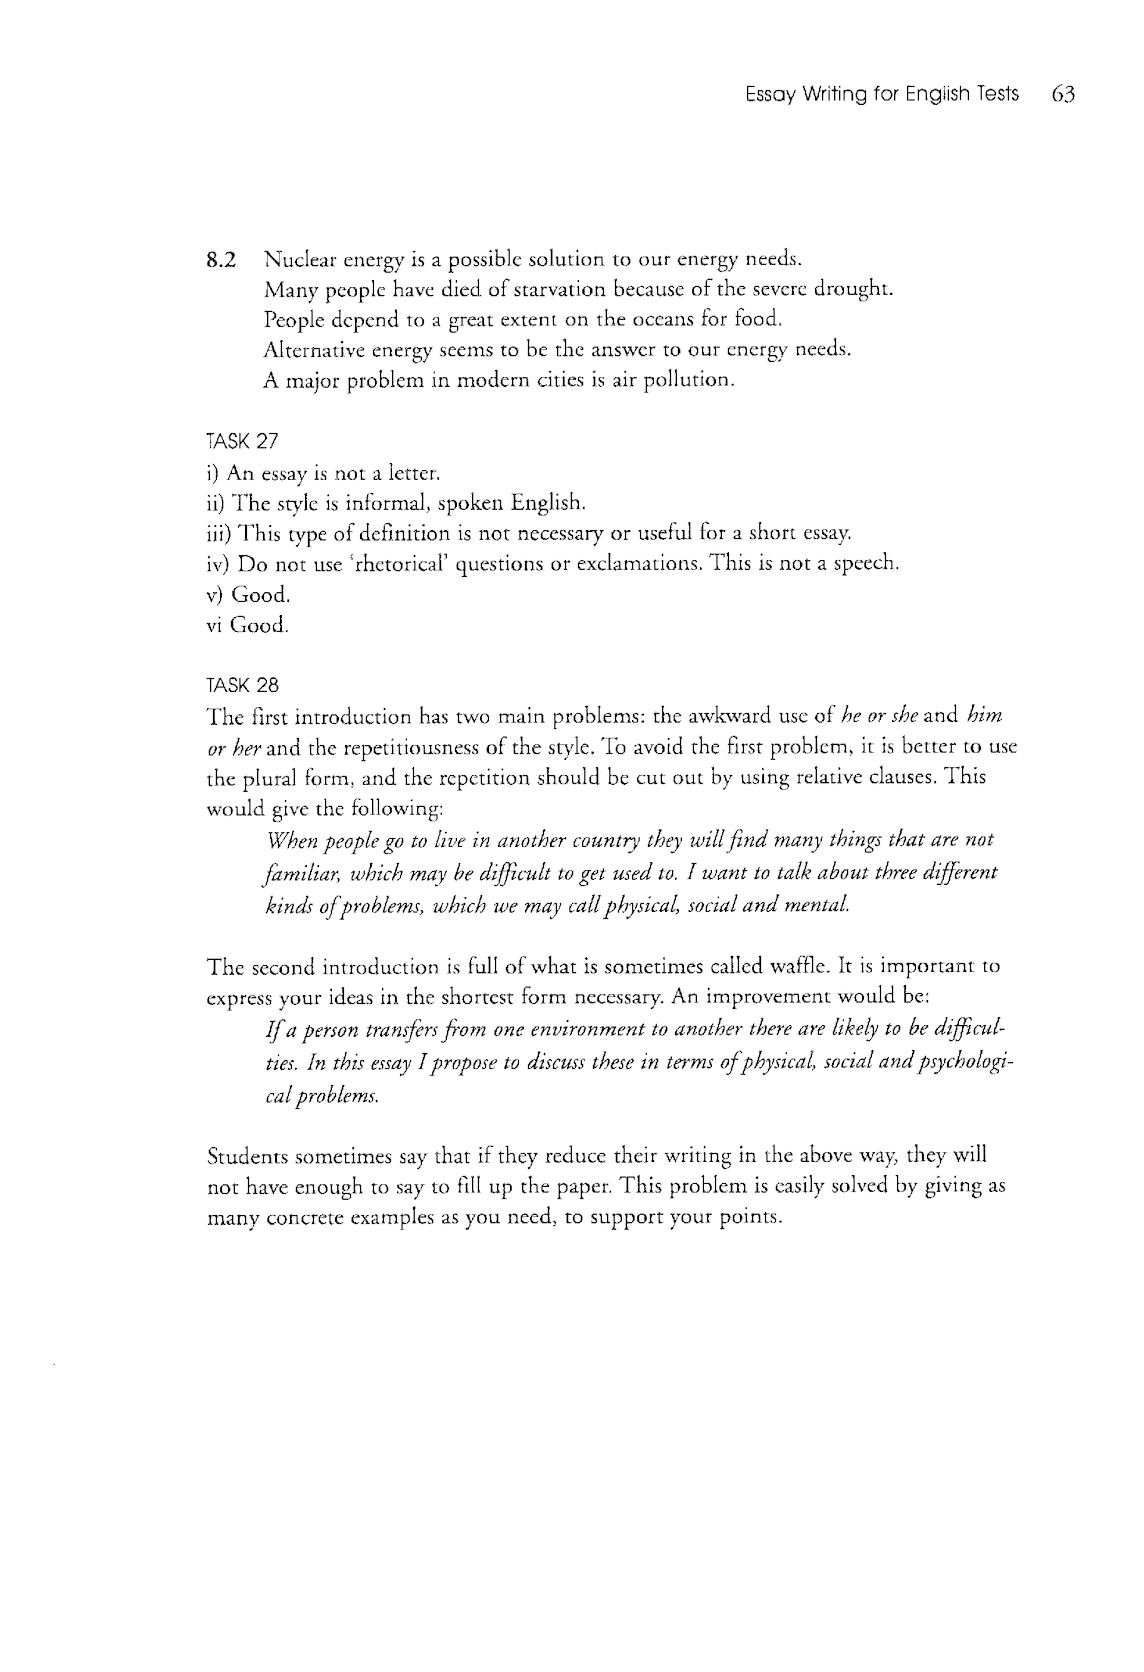 Essay writing for english test